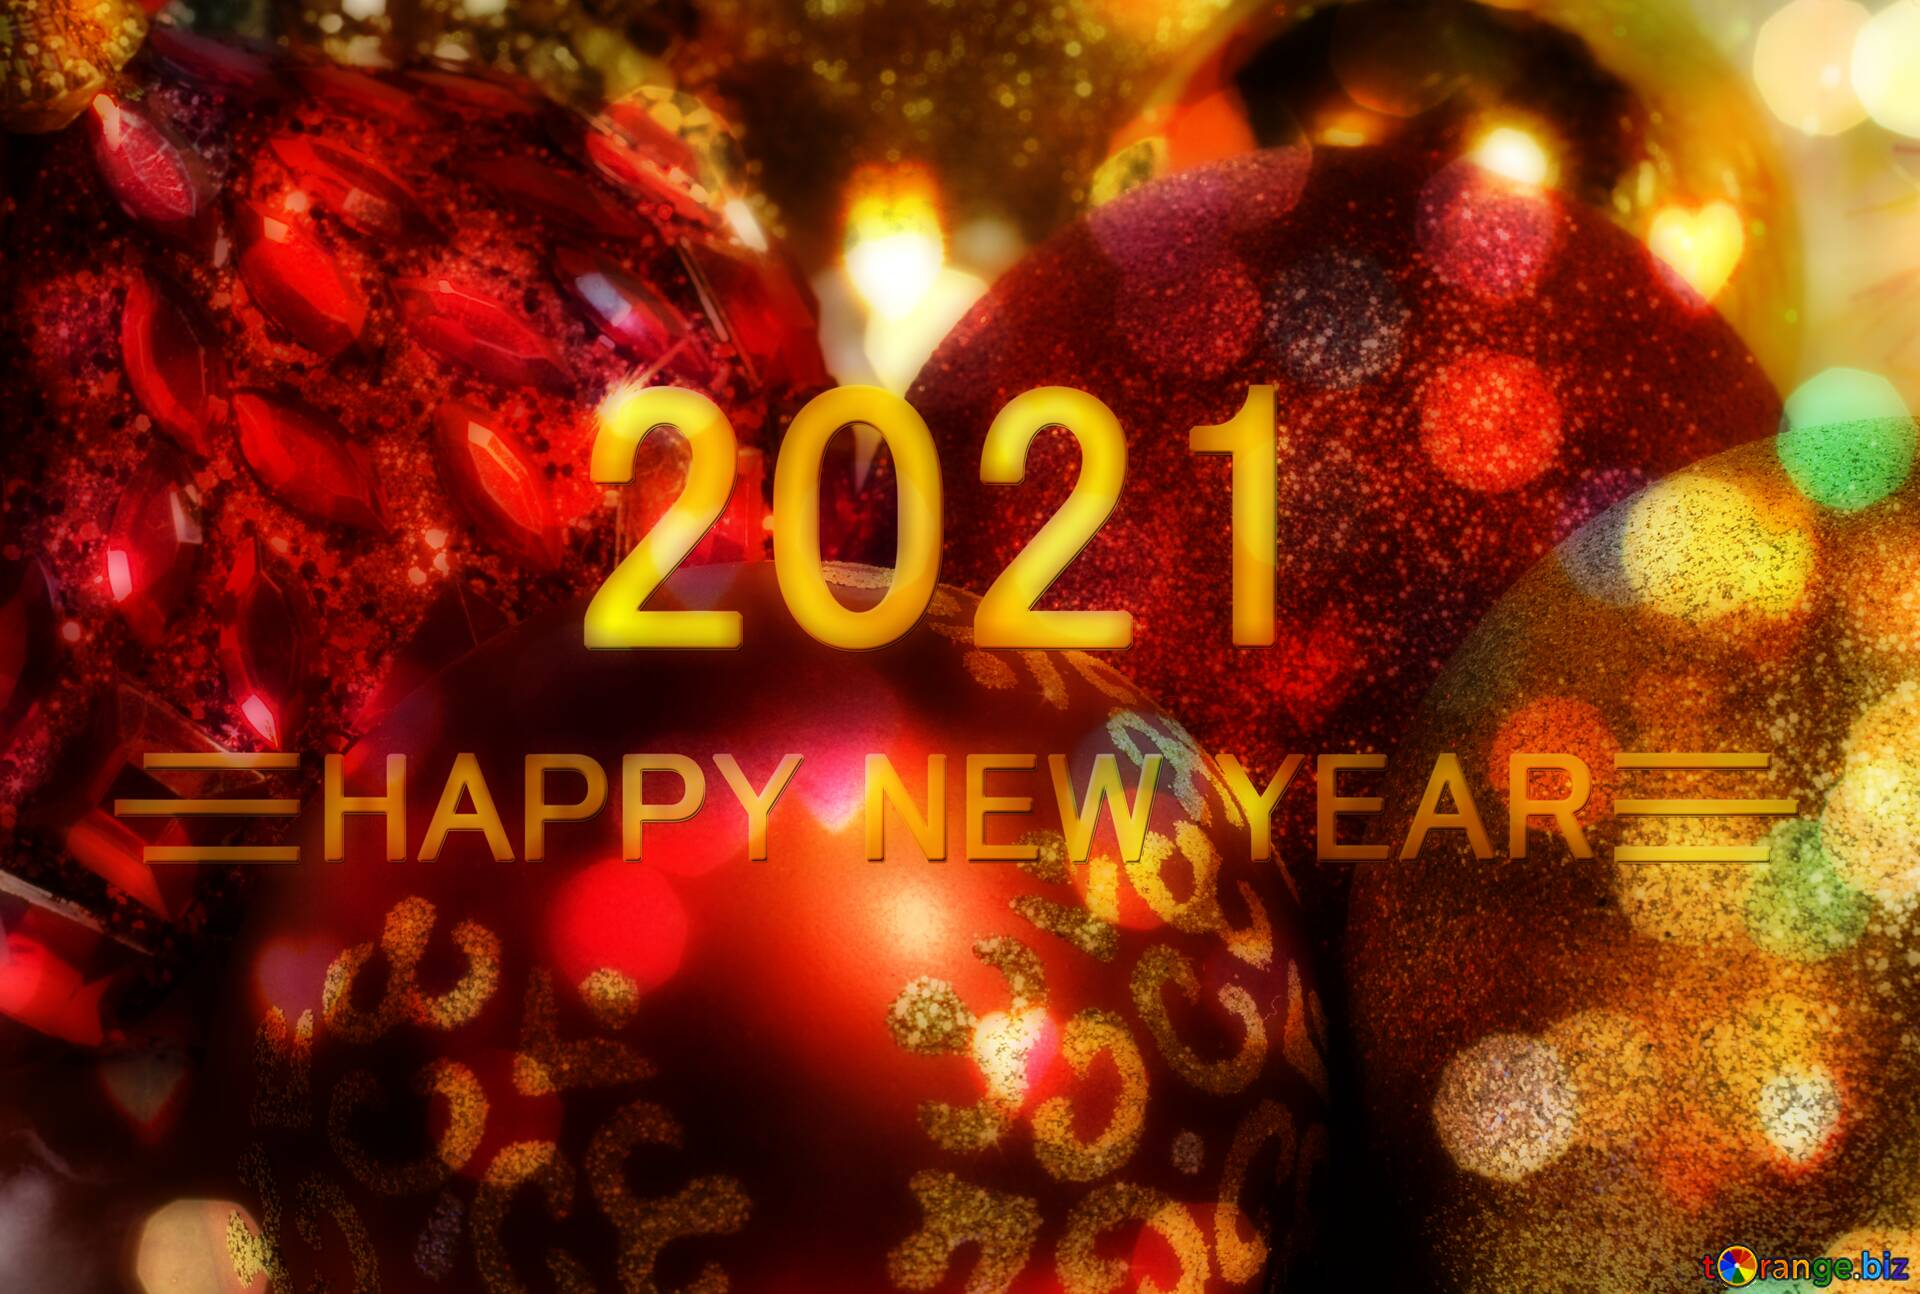 download free picture christmas wishes happy new year 2021 on cc by license free image stock torange biz fx 212383 download free picture christmas wishes happy new year 2021 on cc by license free image stock torange biz fx 212383